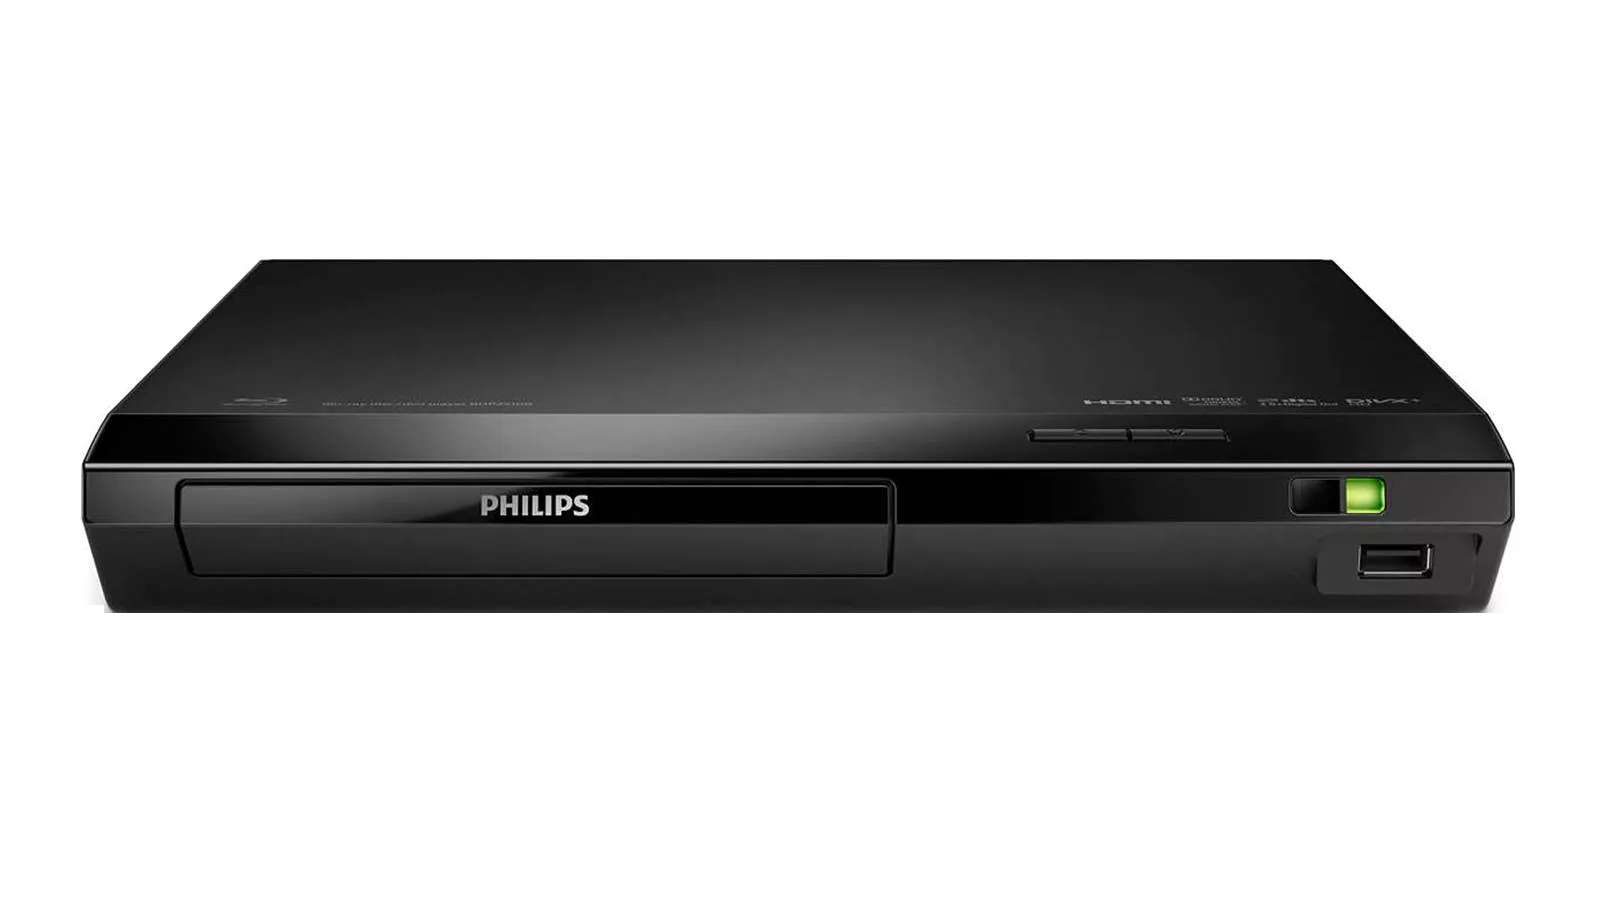 Philips BDP2510 Blu-Ray Player